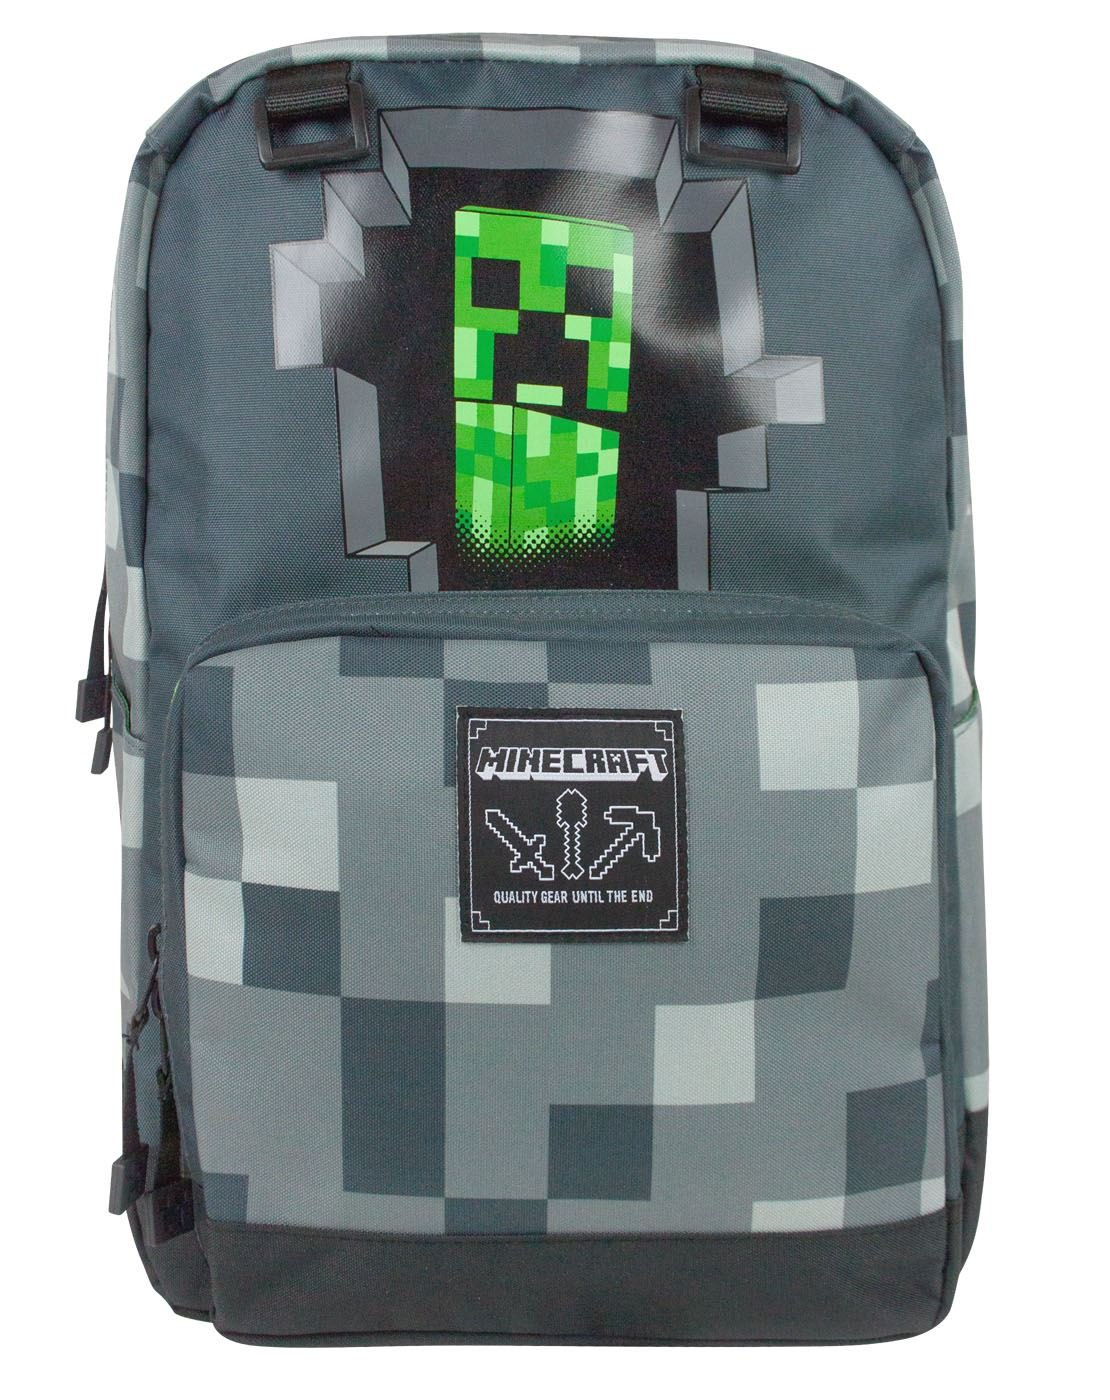 Minecraft Creeper Inside Backpack Luggage 3 Way Switch Wiring Diagram